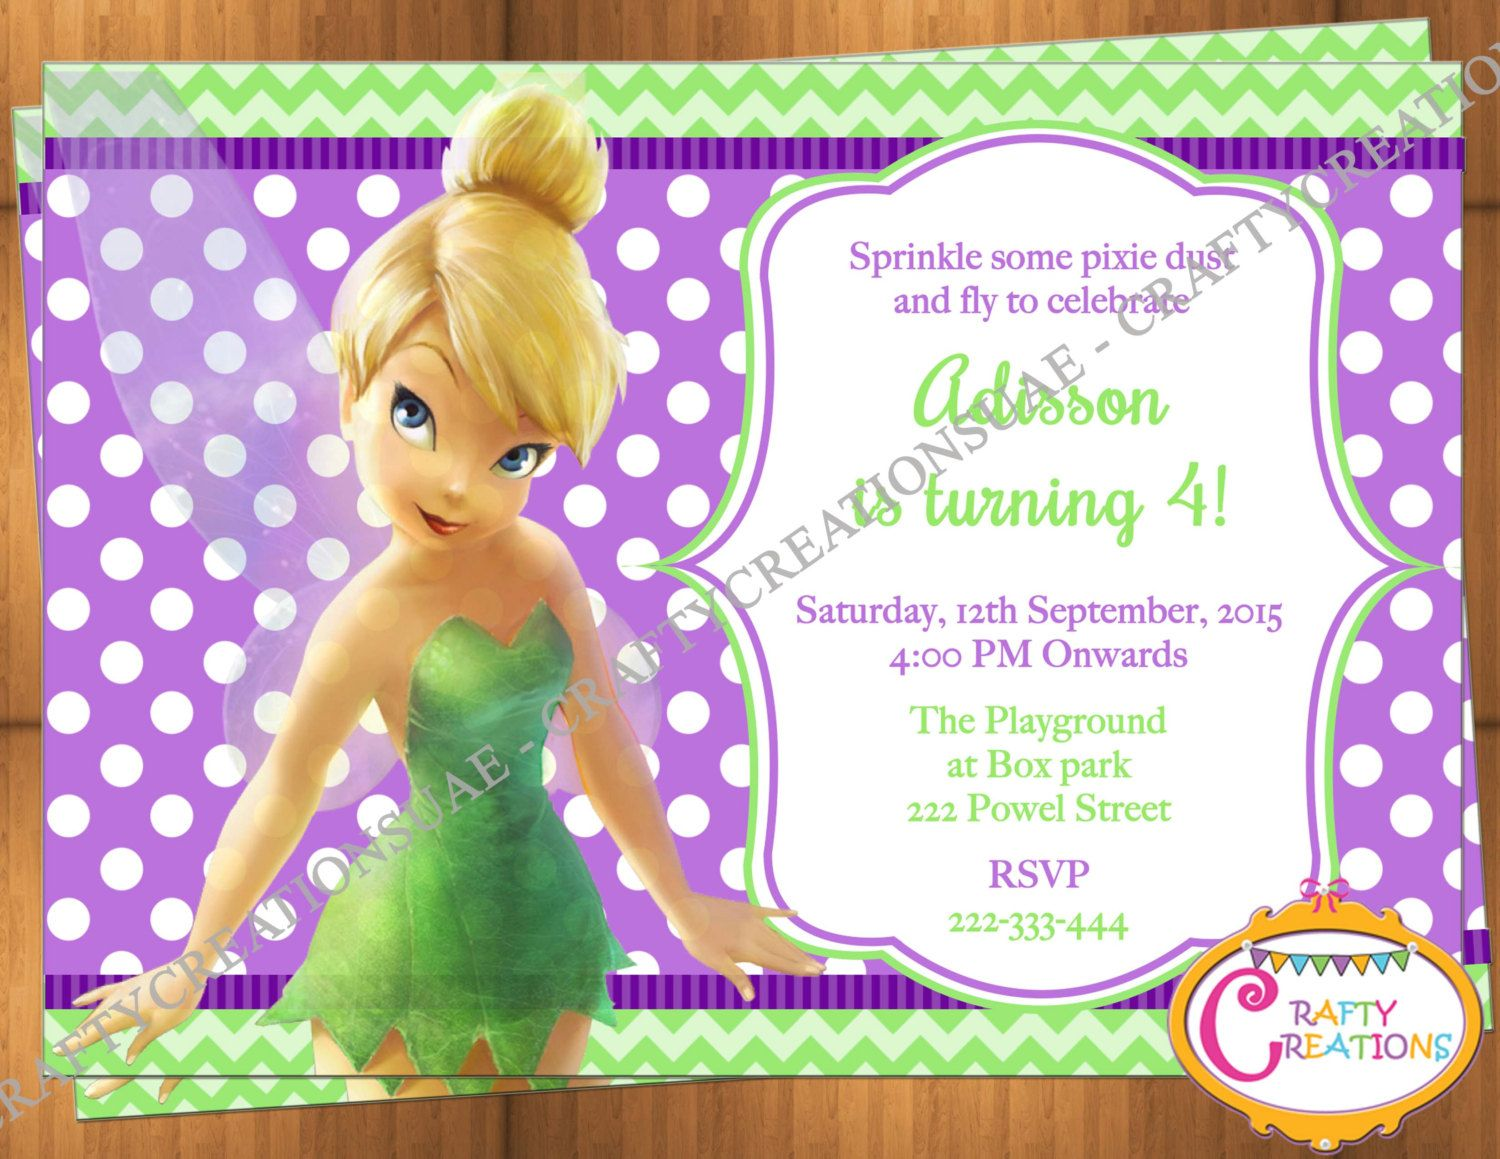 Tinkerbell Party Invitations samples of birthday invitation cards – Tinkerbell Party Invitation